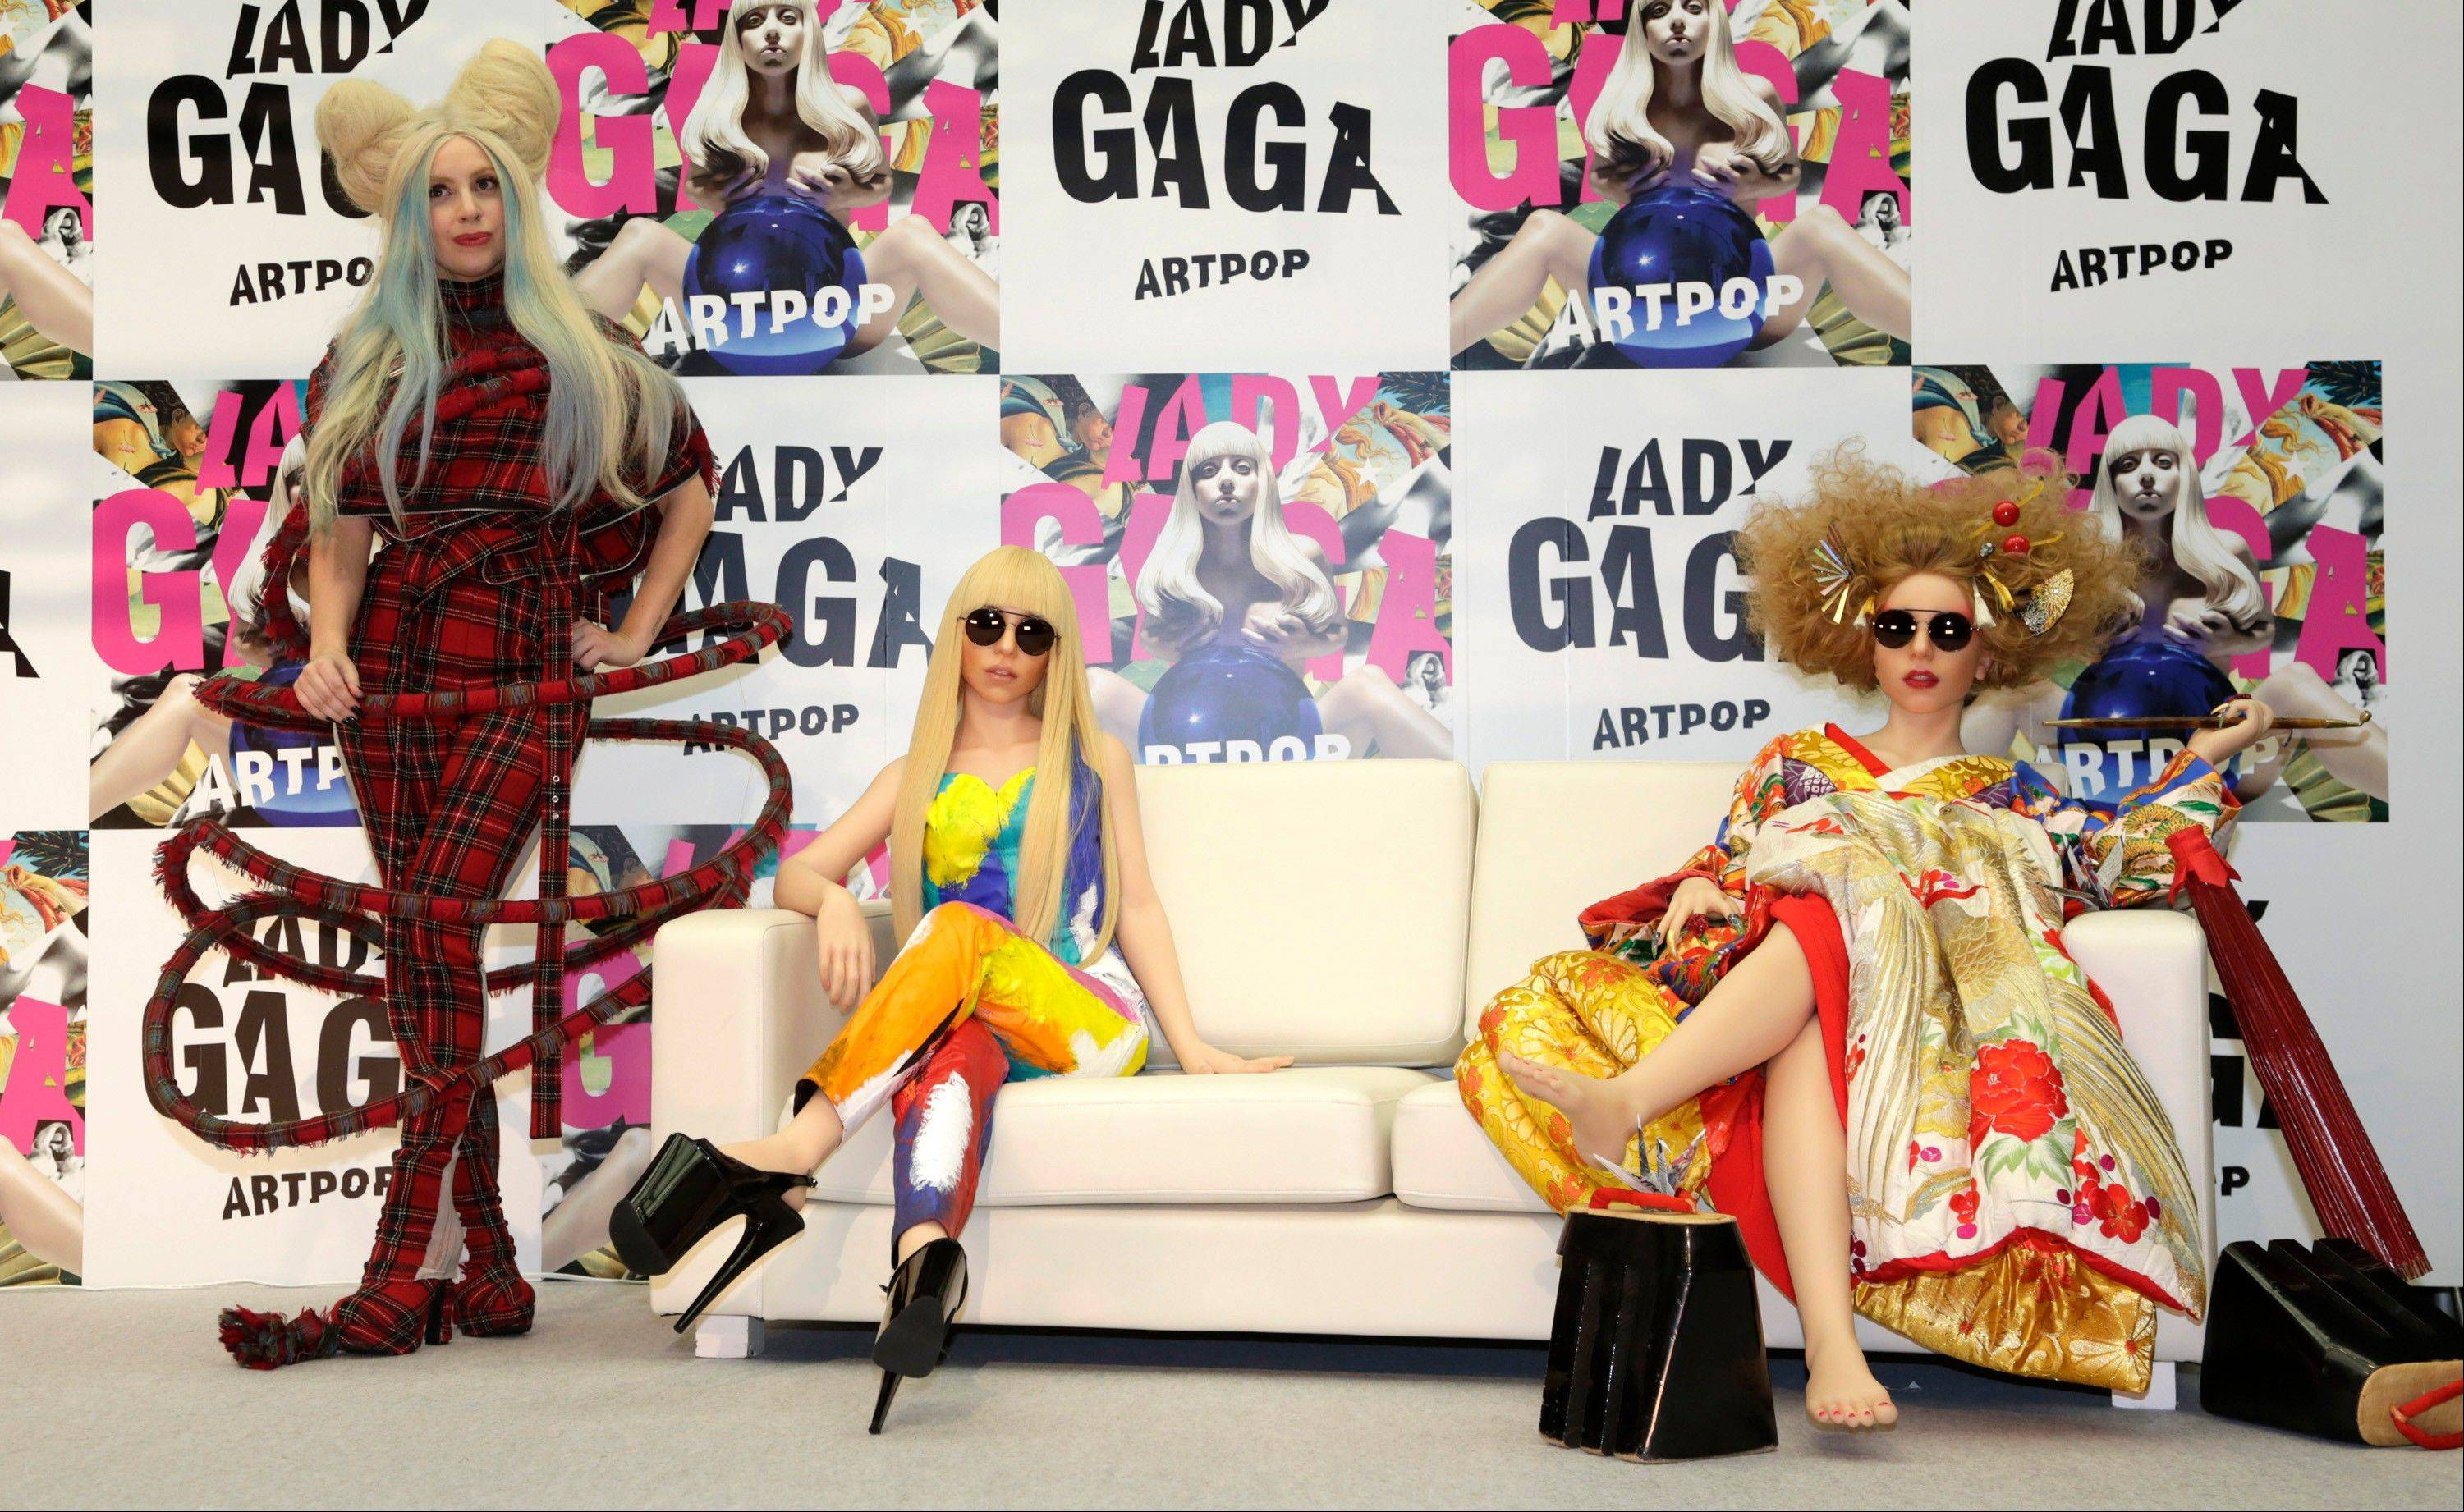 Lady Gaga, left, unveiled life-size dolls in her likeness, dressed in her flamboyant costumes, at a Tokyo event Sunday.